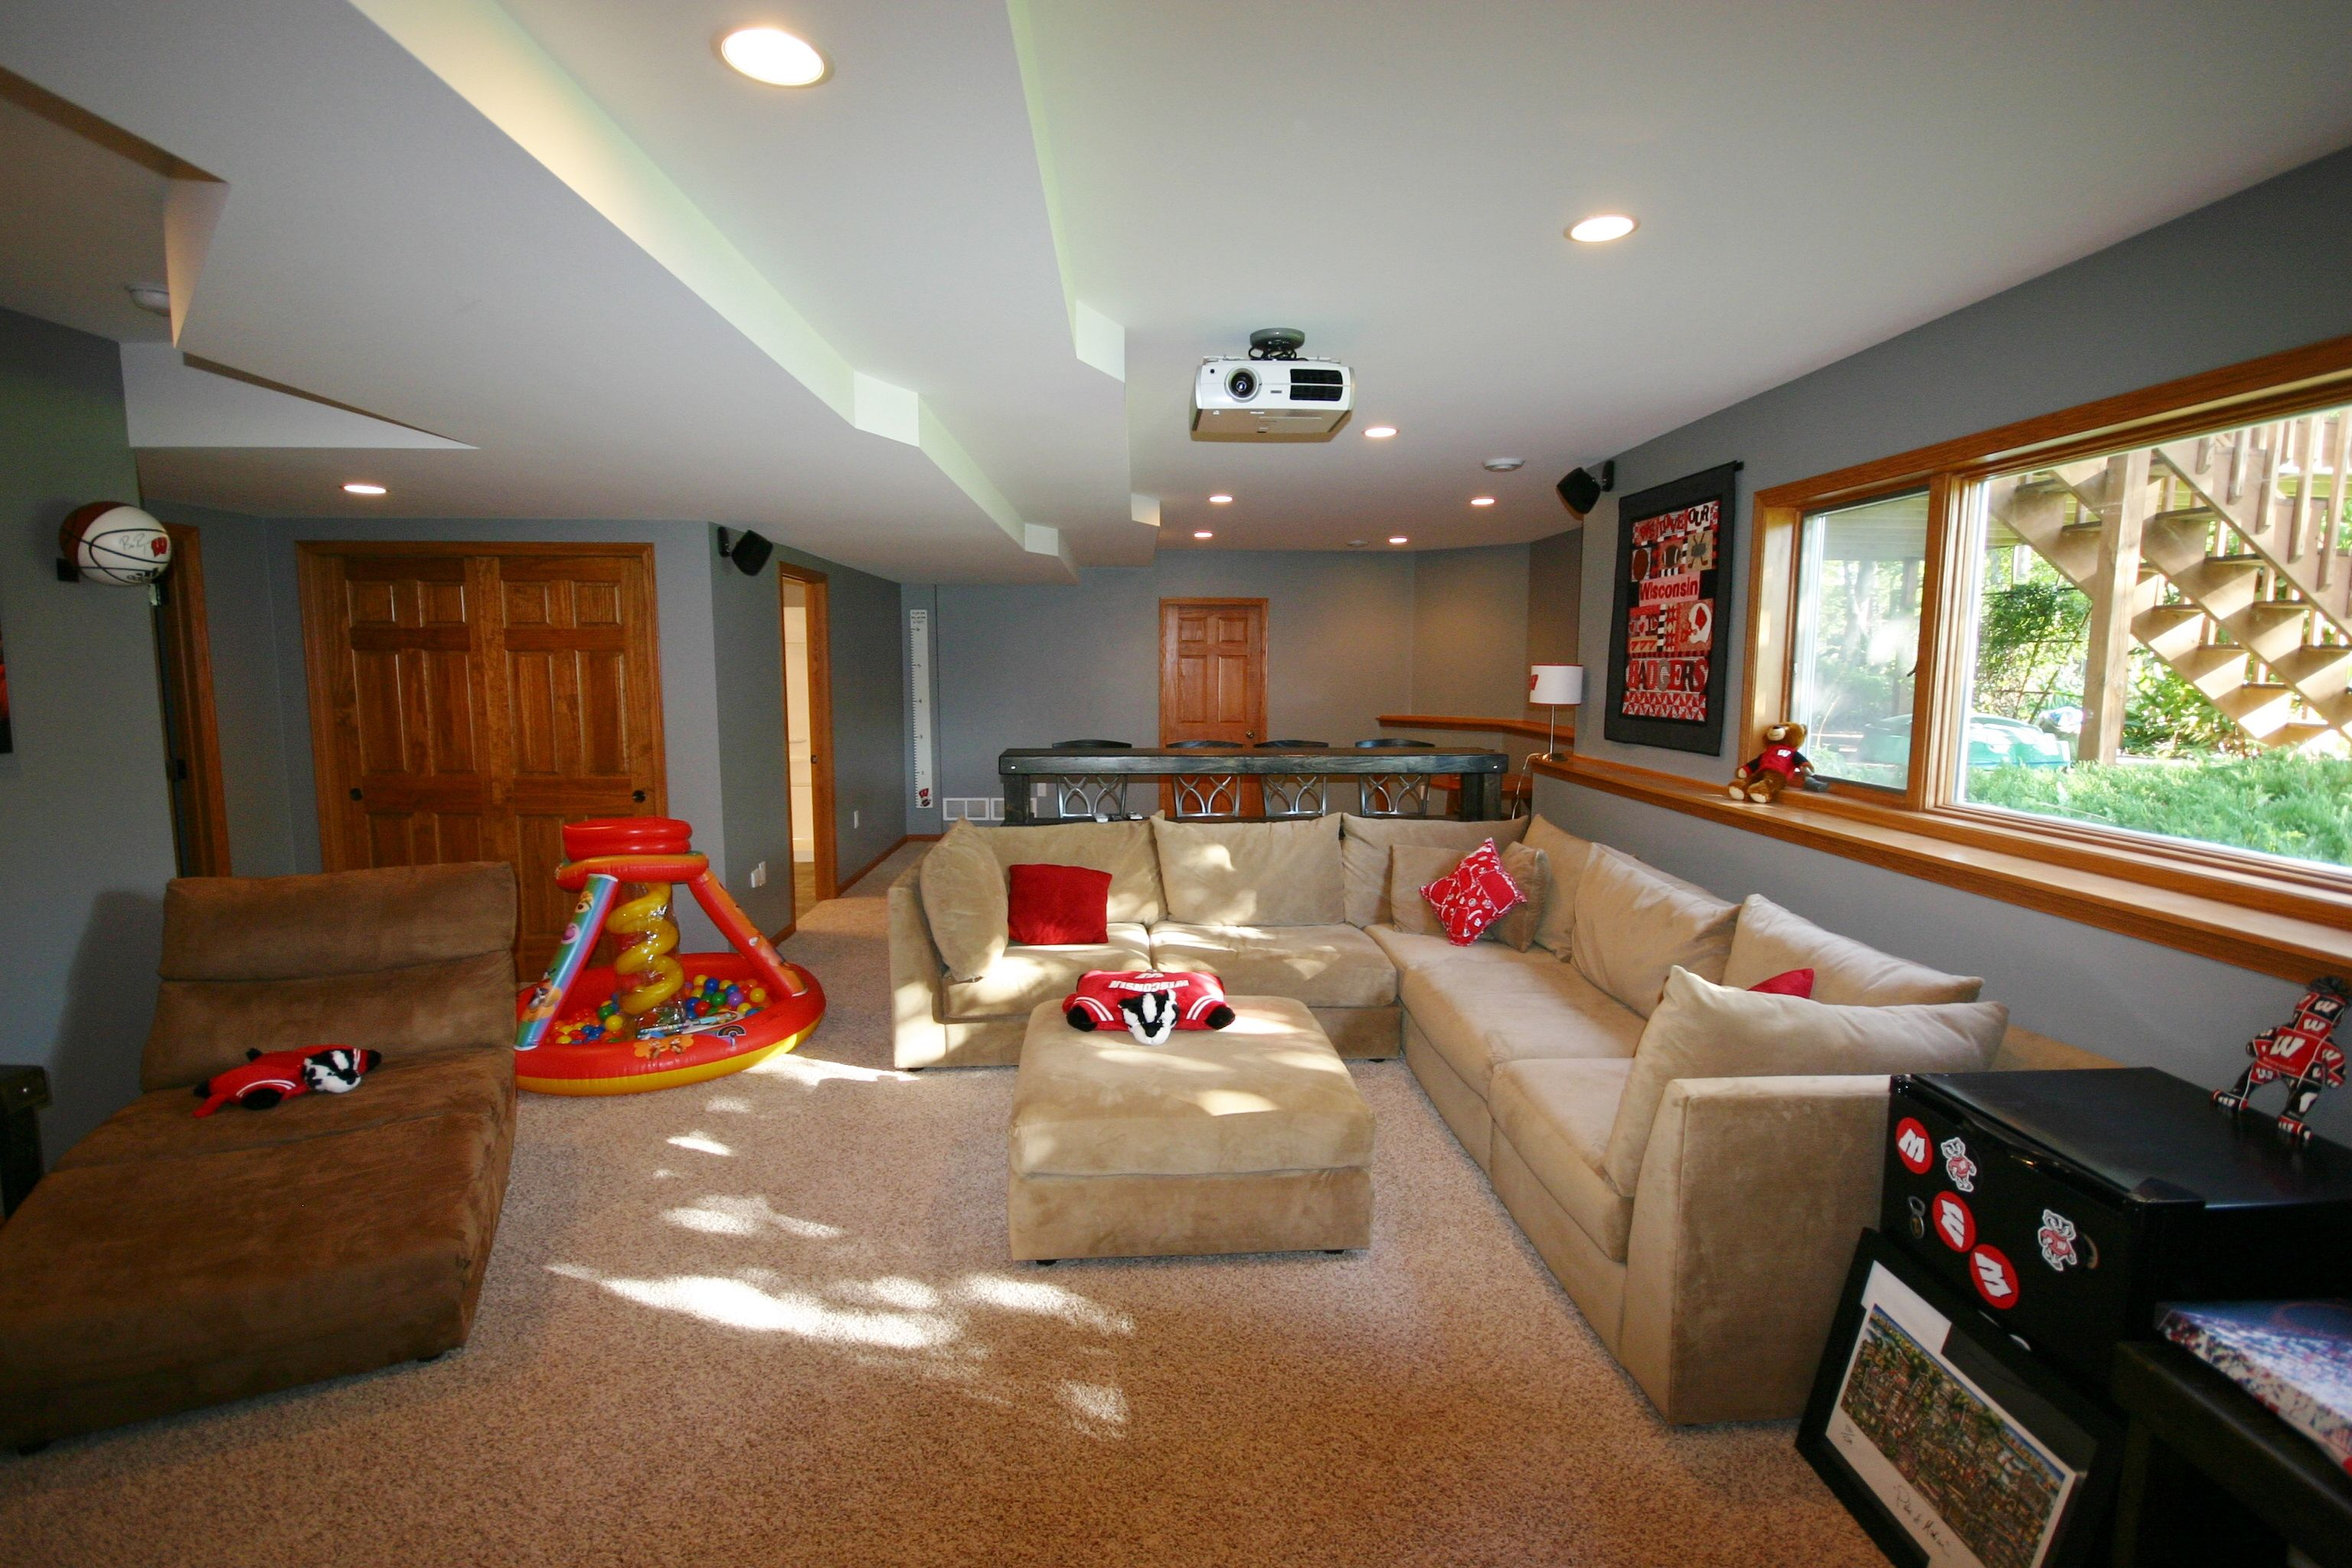 Basement Finish, With Carpeting, Oak Trimmed Ledge, Projector Screen, Man